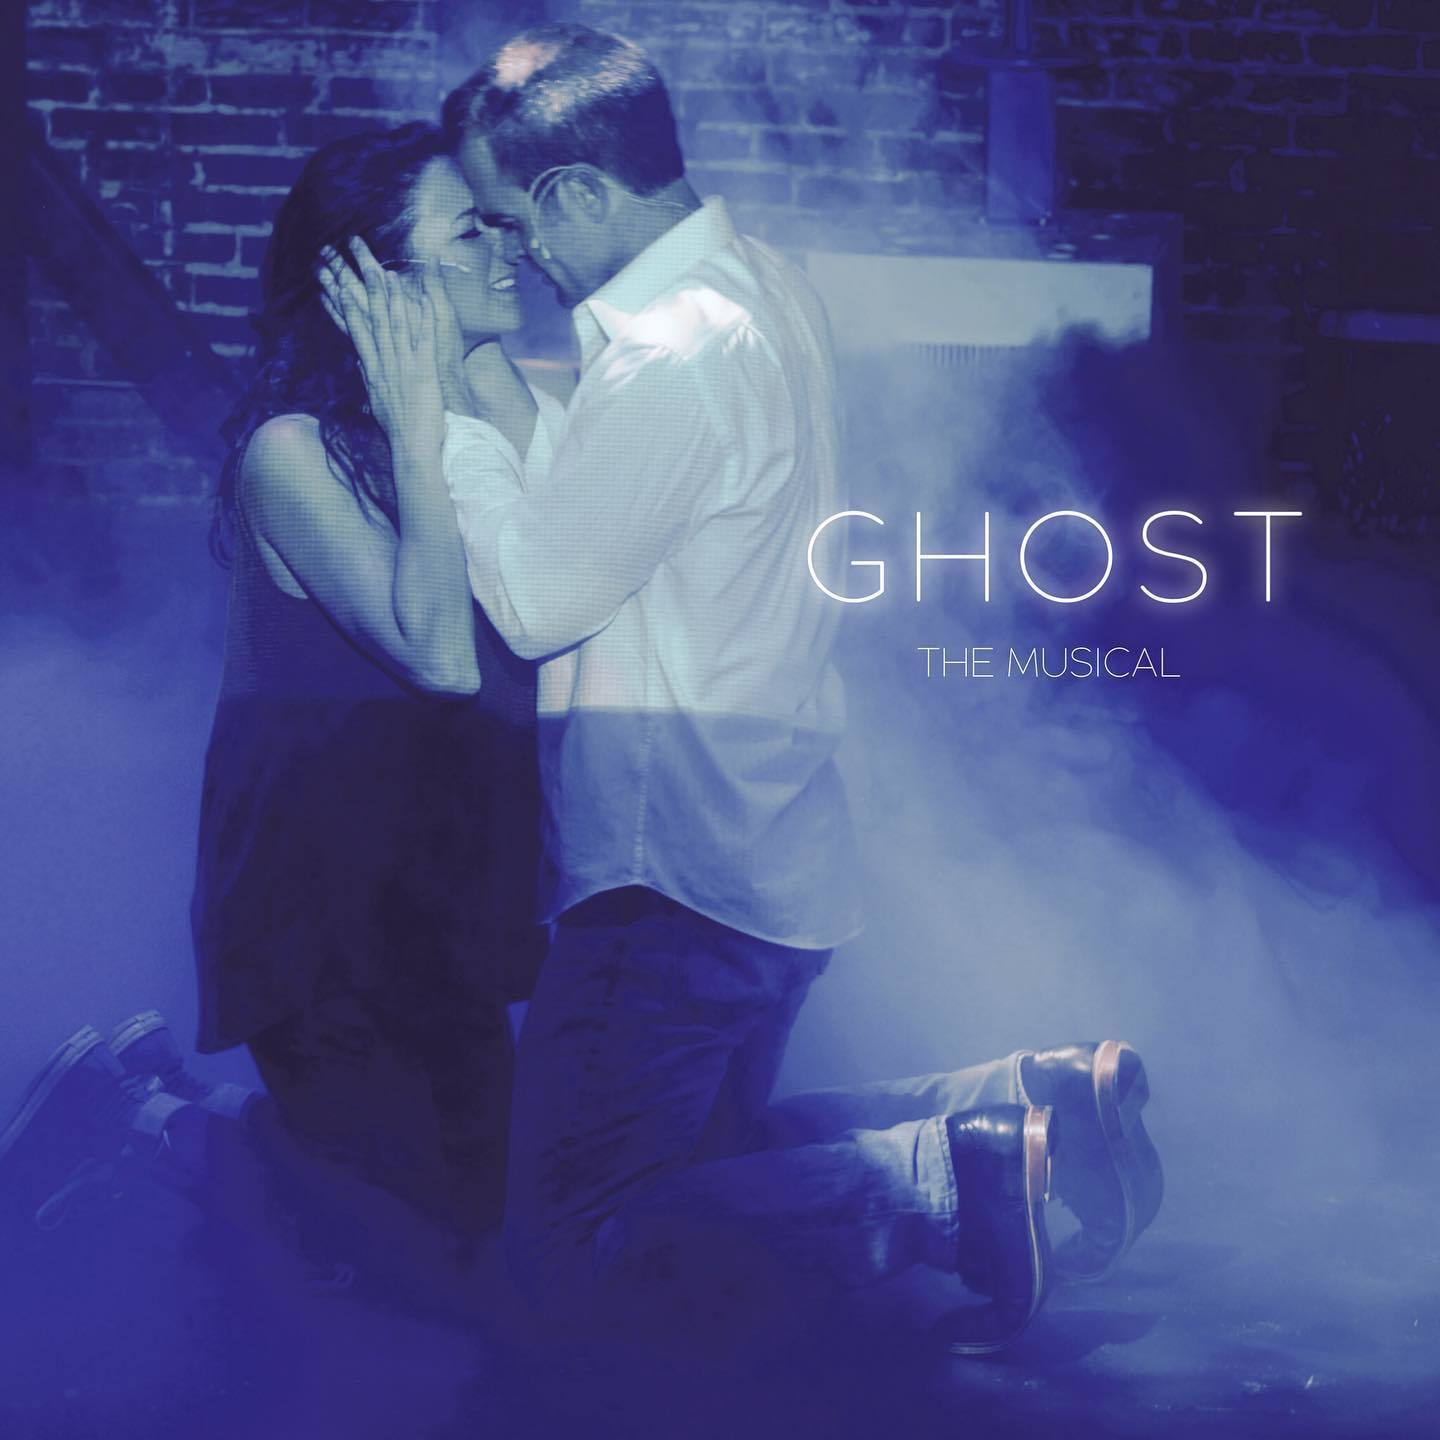 BWW Review: GHOST THE MUSICAL Brings Poltergeists, Pop Songs, and Pottery to Theater West End in Sanford